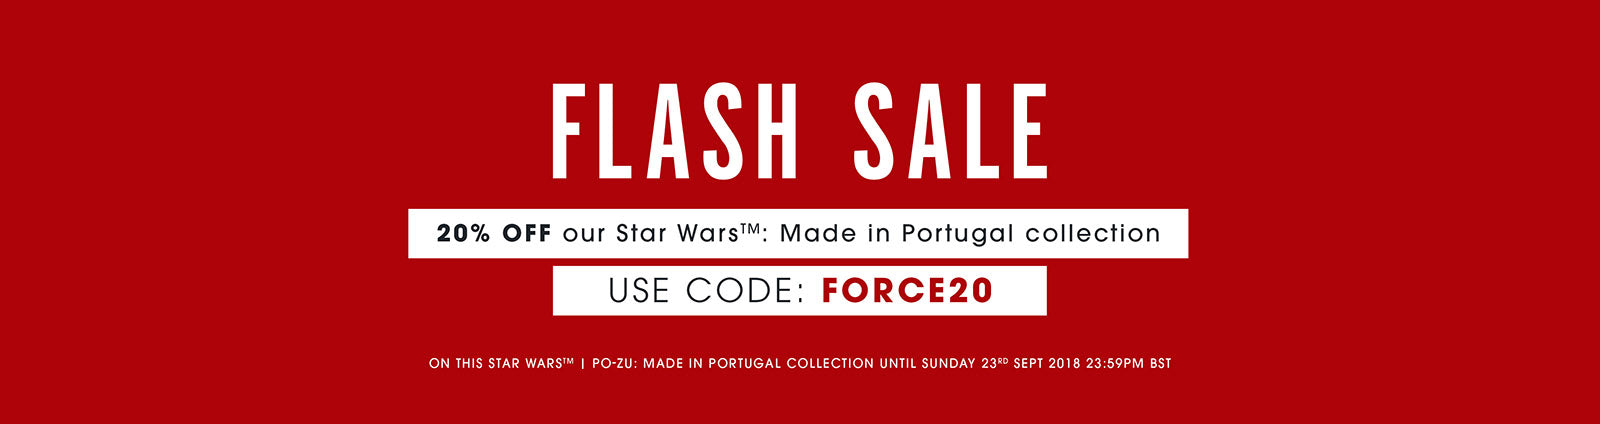 FLASH SALE 20% off Star Wars TM | Po-Zu: Made in Portugal collection